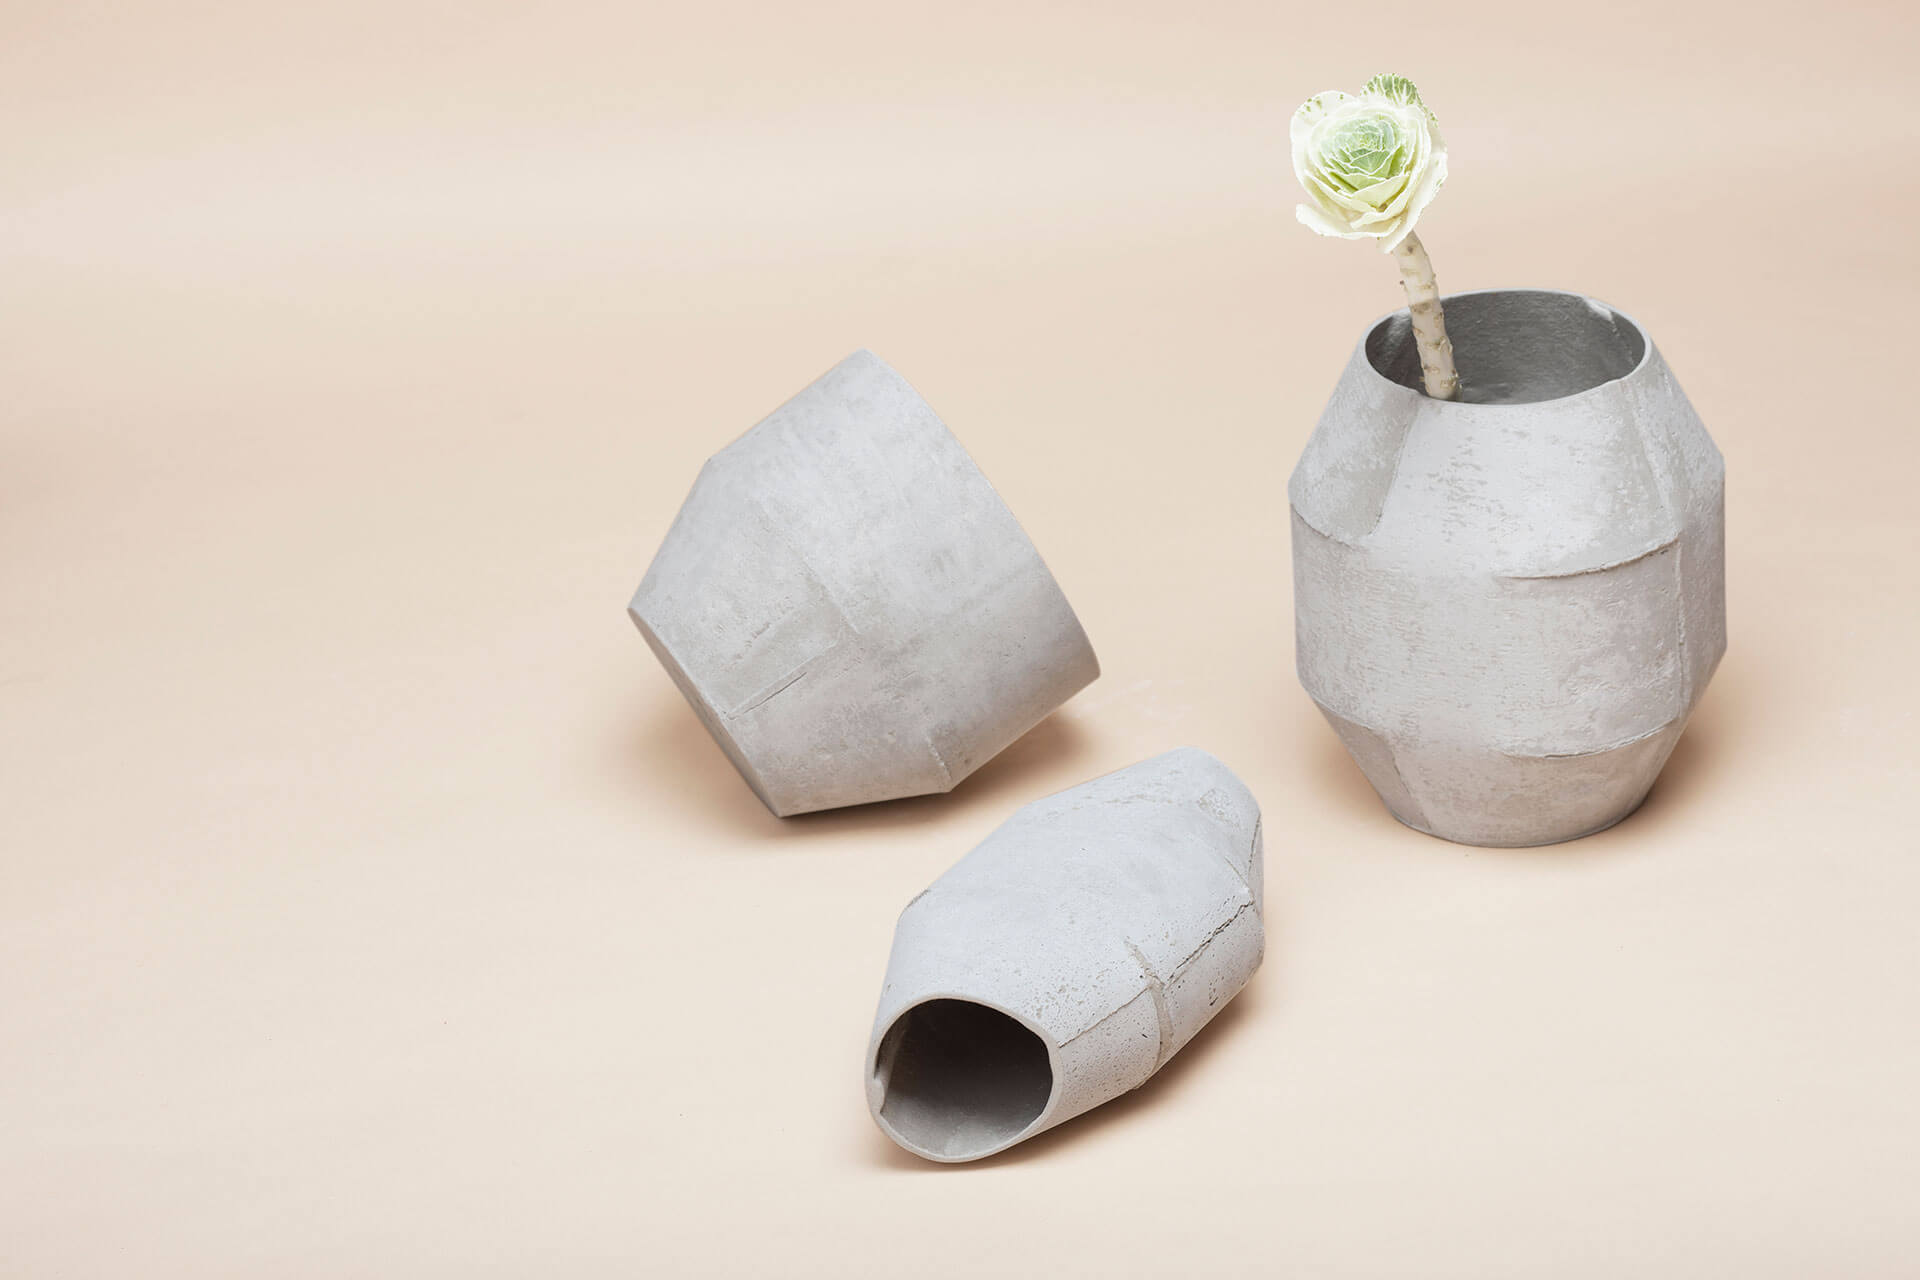 7 Portuguese Talented Artisans You Must Know cement vases portuguese talented artisans 7 Portuguese Talented Artisans You Must Know 7 Portuguese Talented Artisans You Must Know cement vases